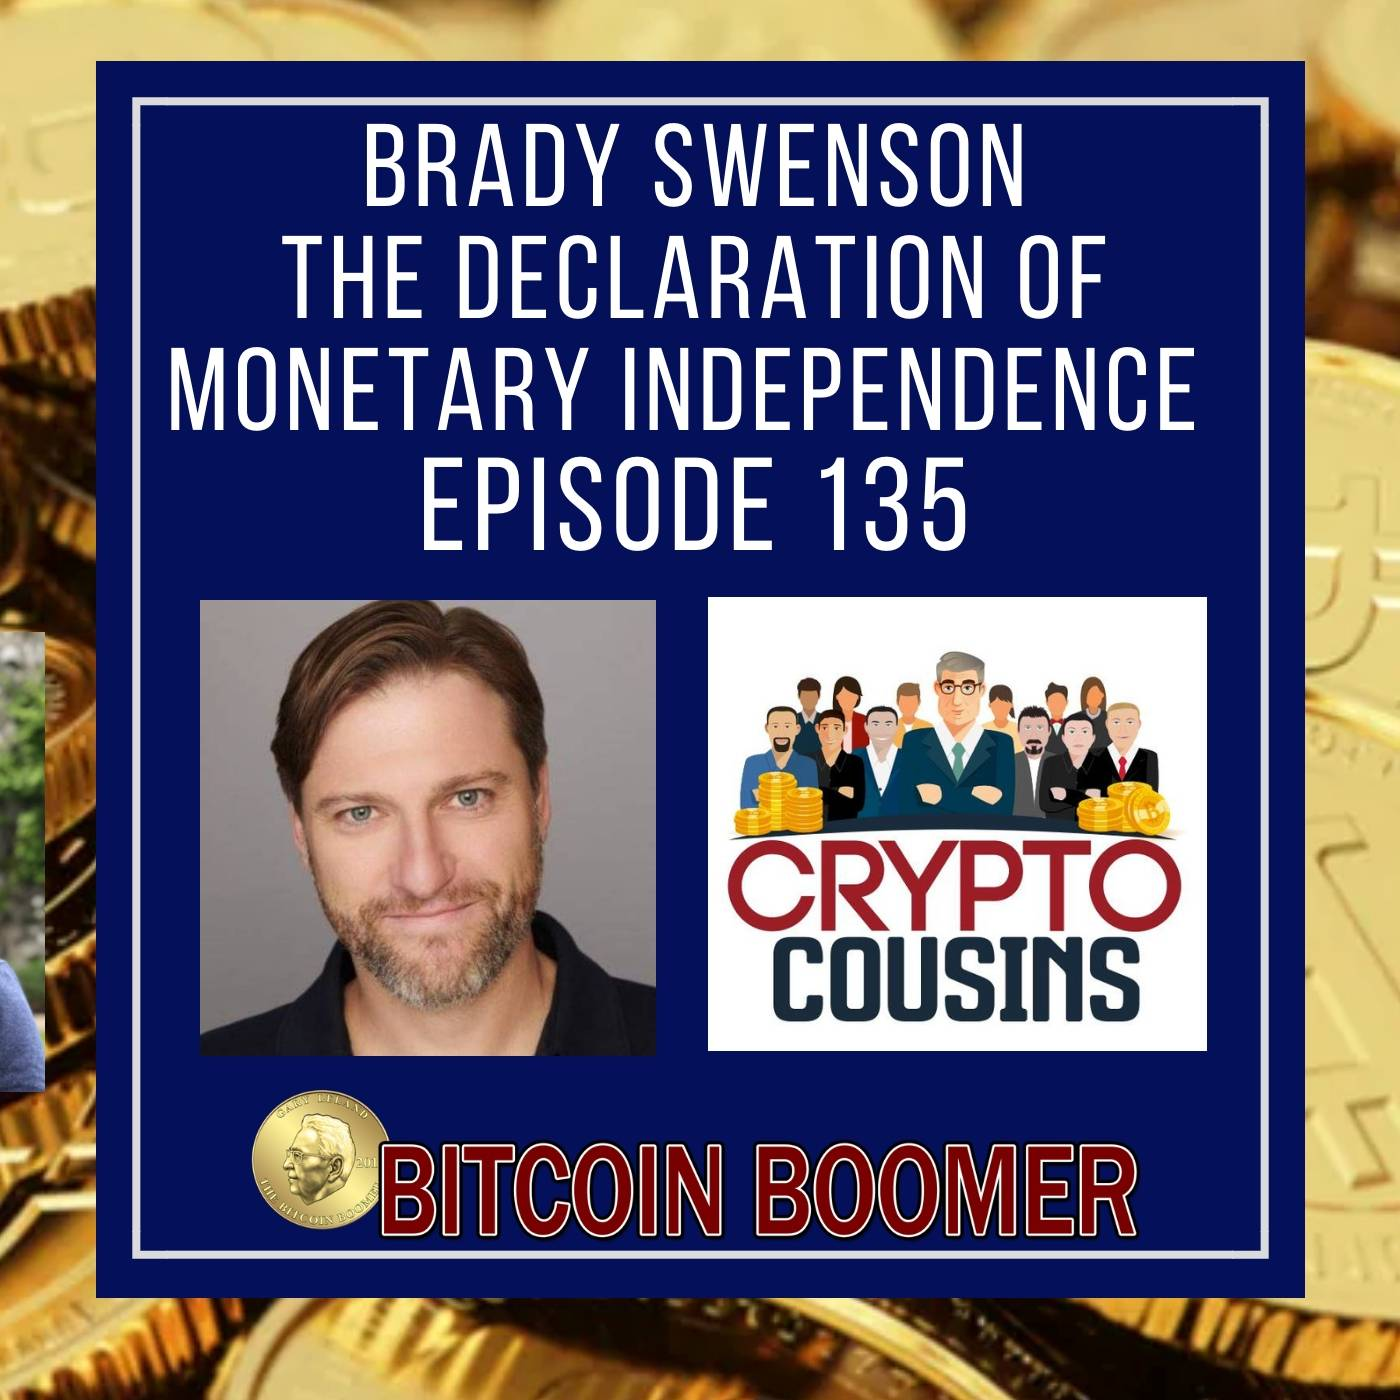 The Declaration of Monetary Independence - Brady Swenson